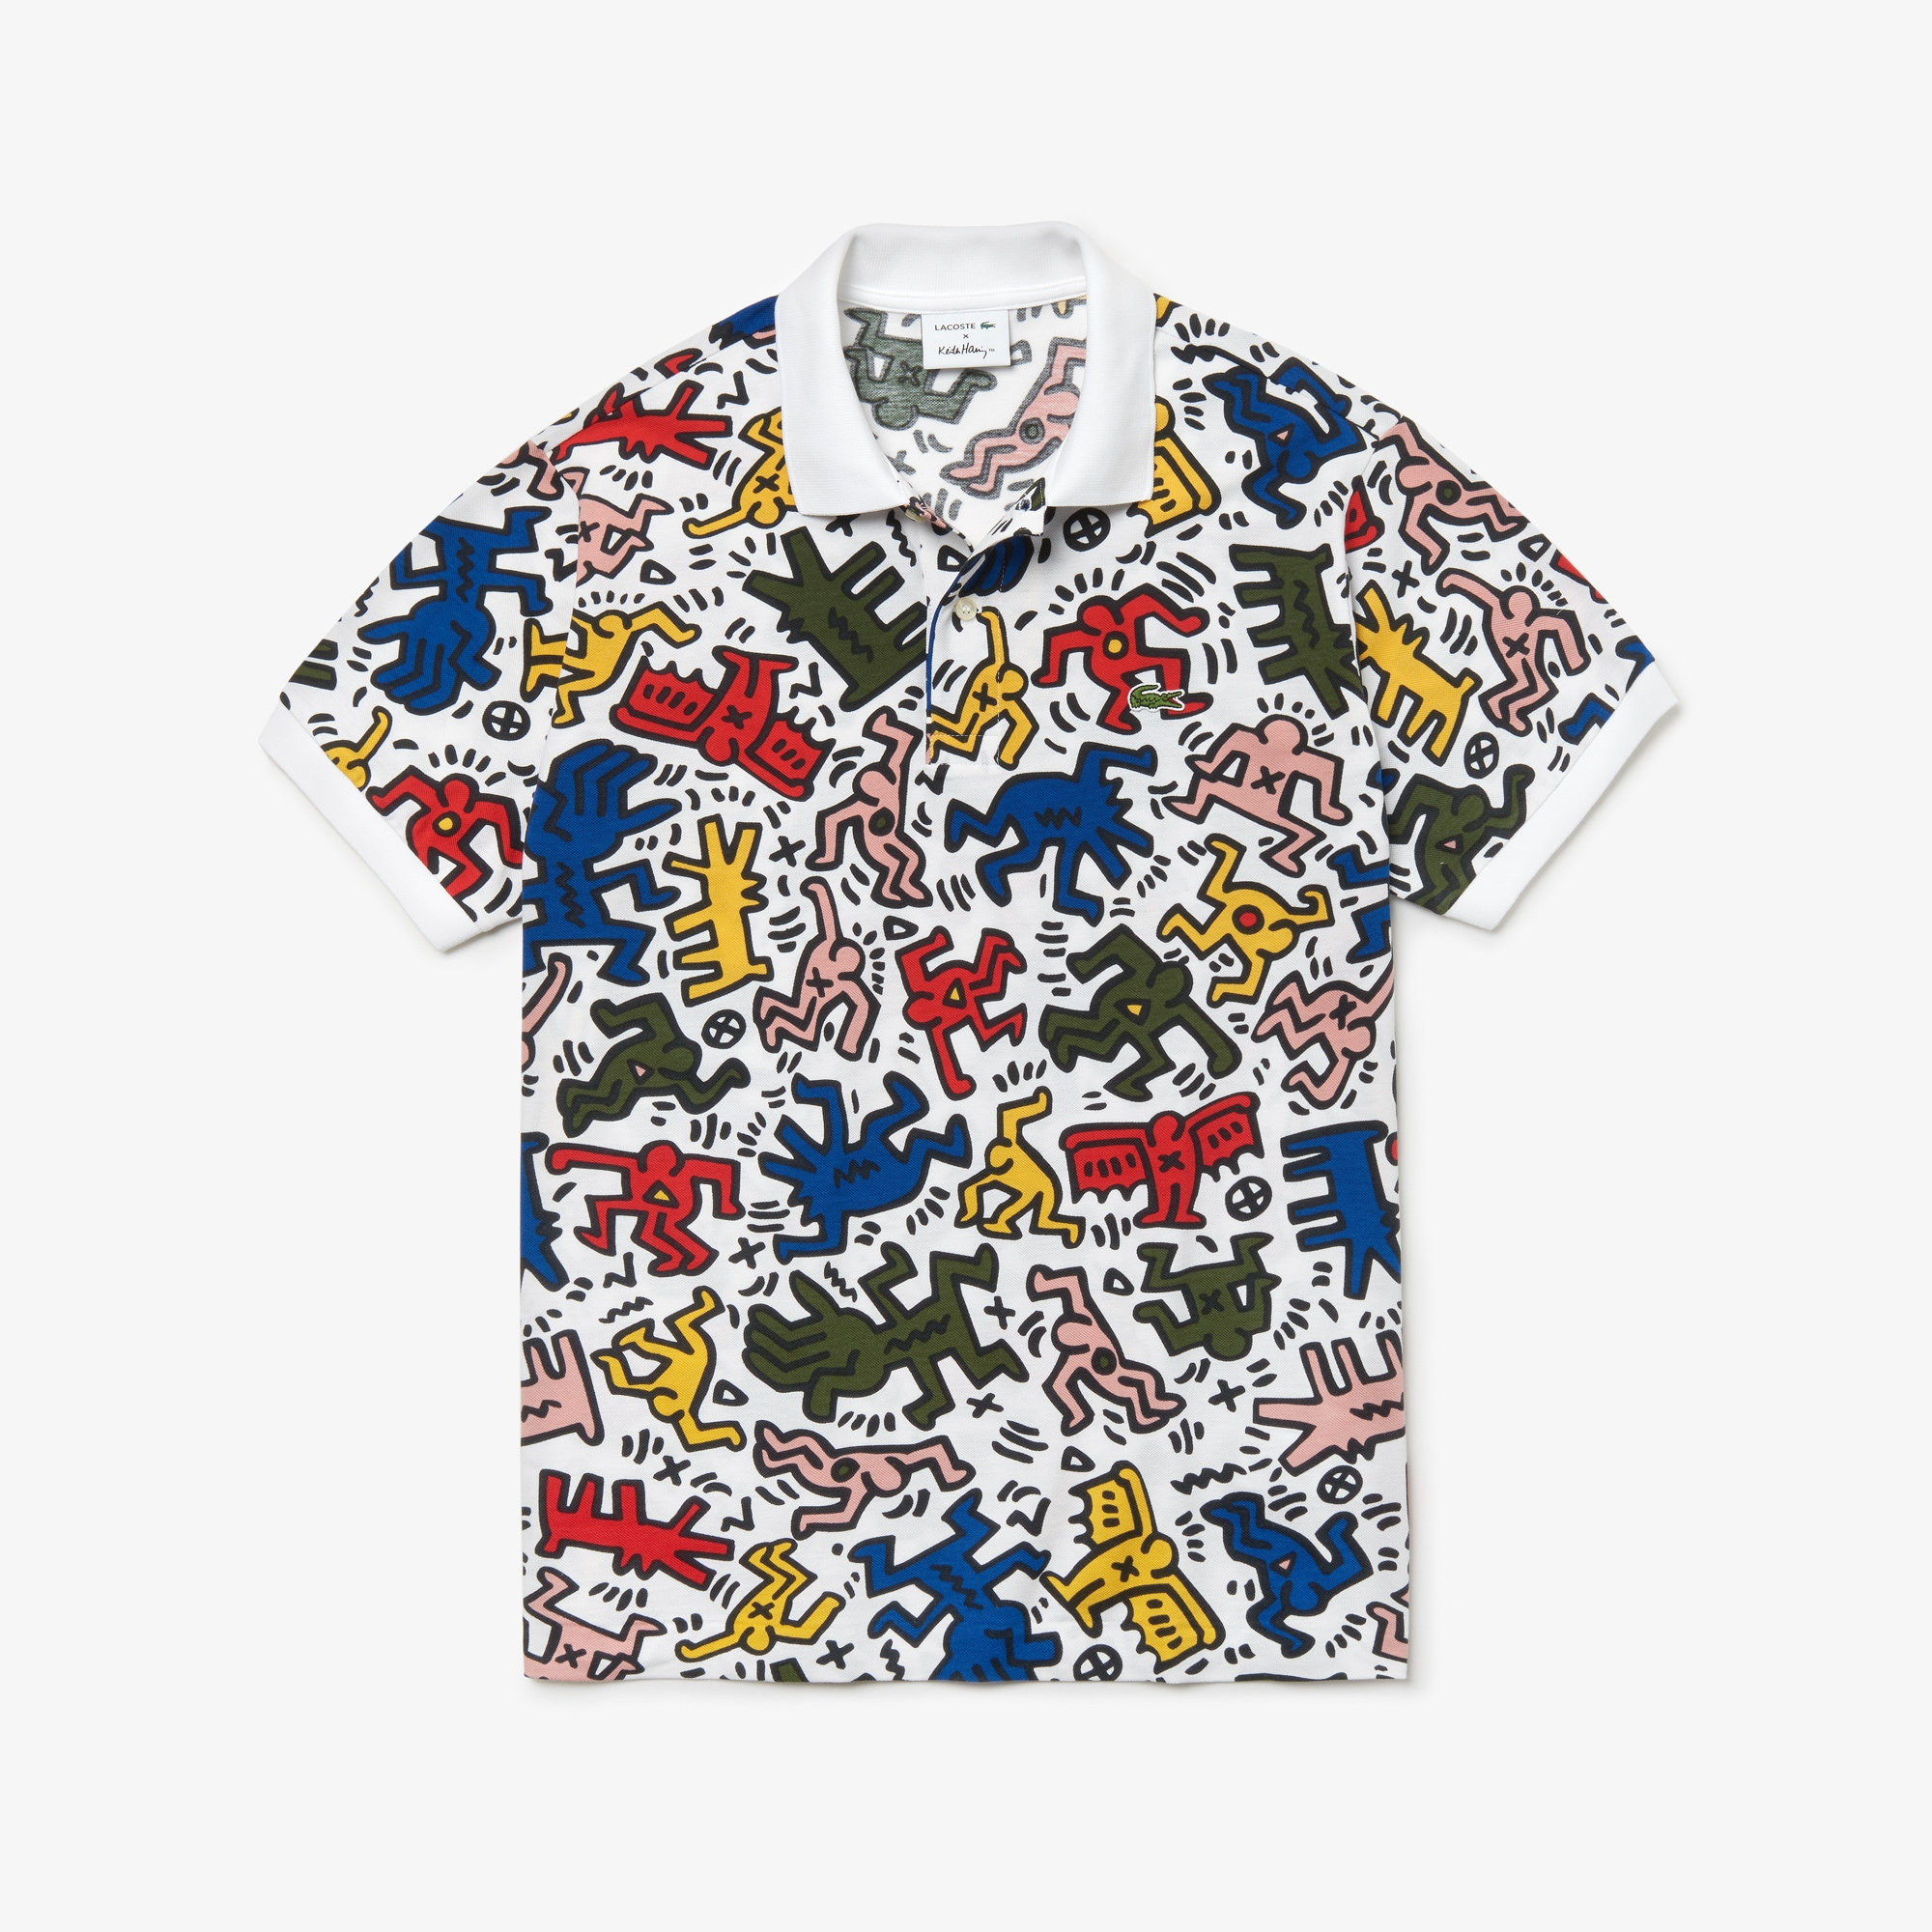 95ad34d9c44e9 Lacoste x Keith Haring